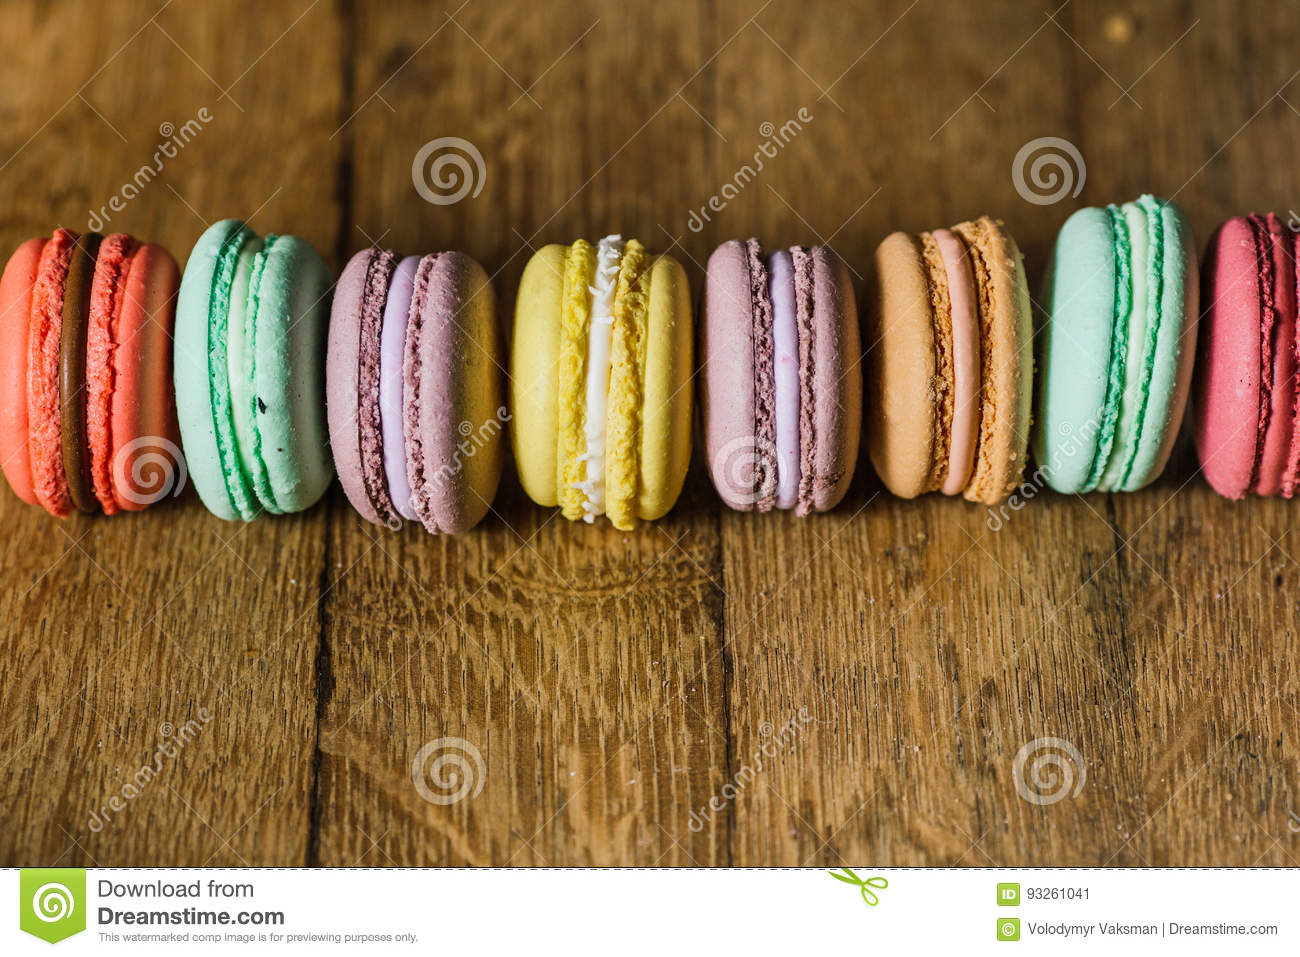 Cake macaron or macaroon on turquoise background from above, col